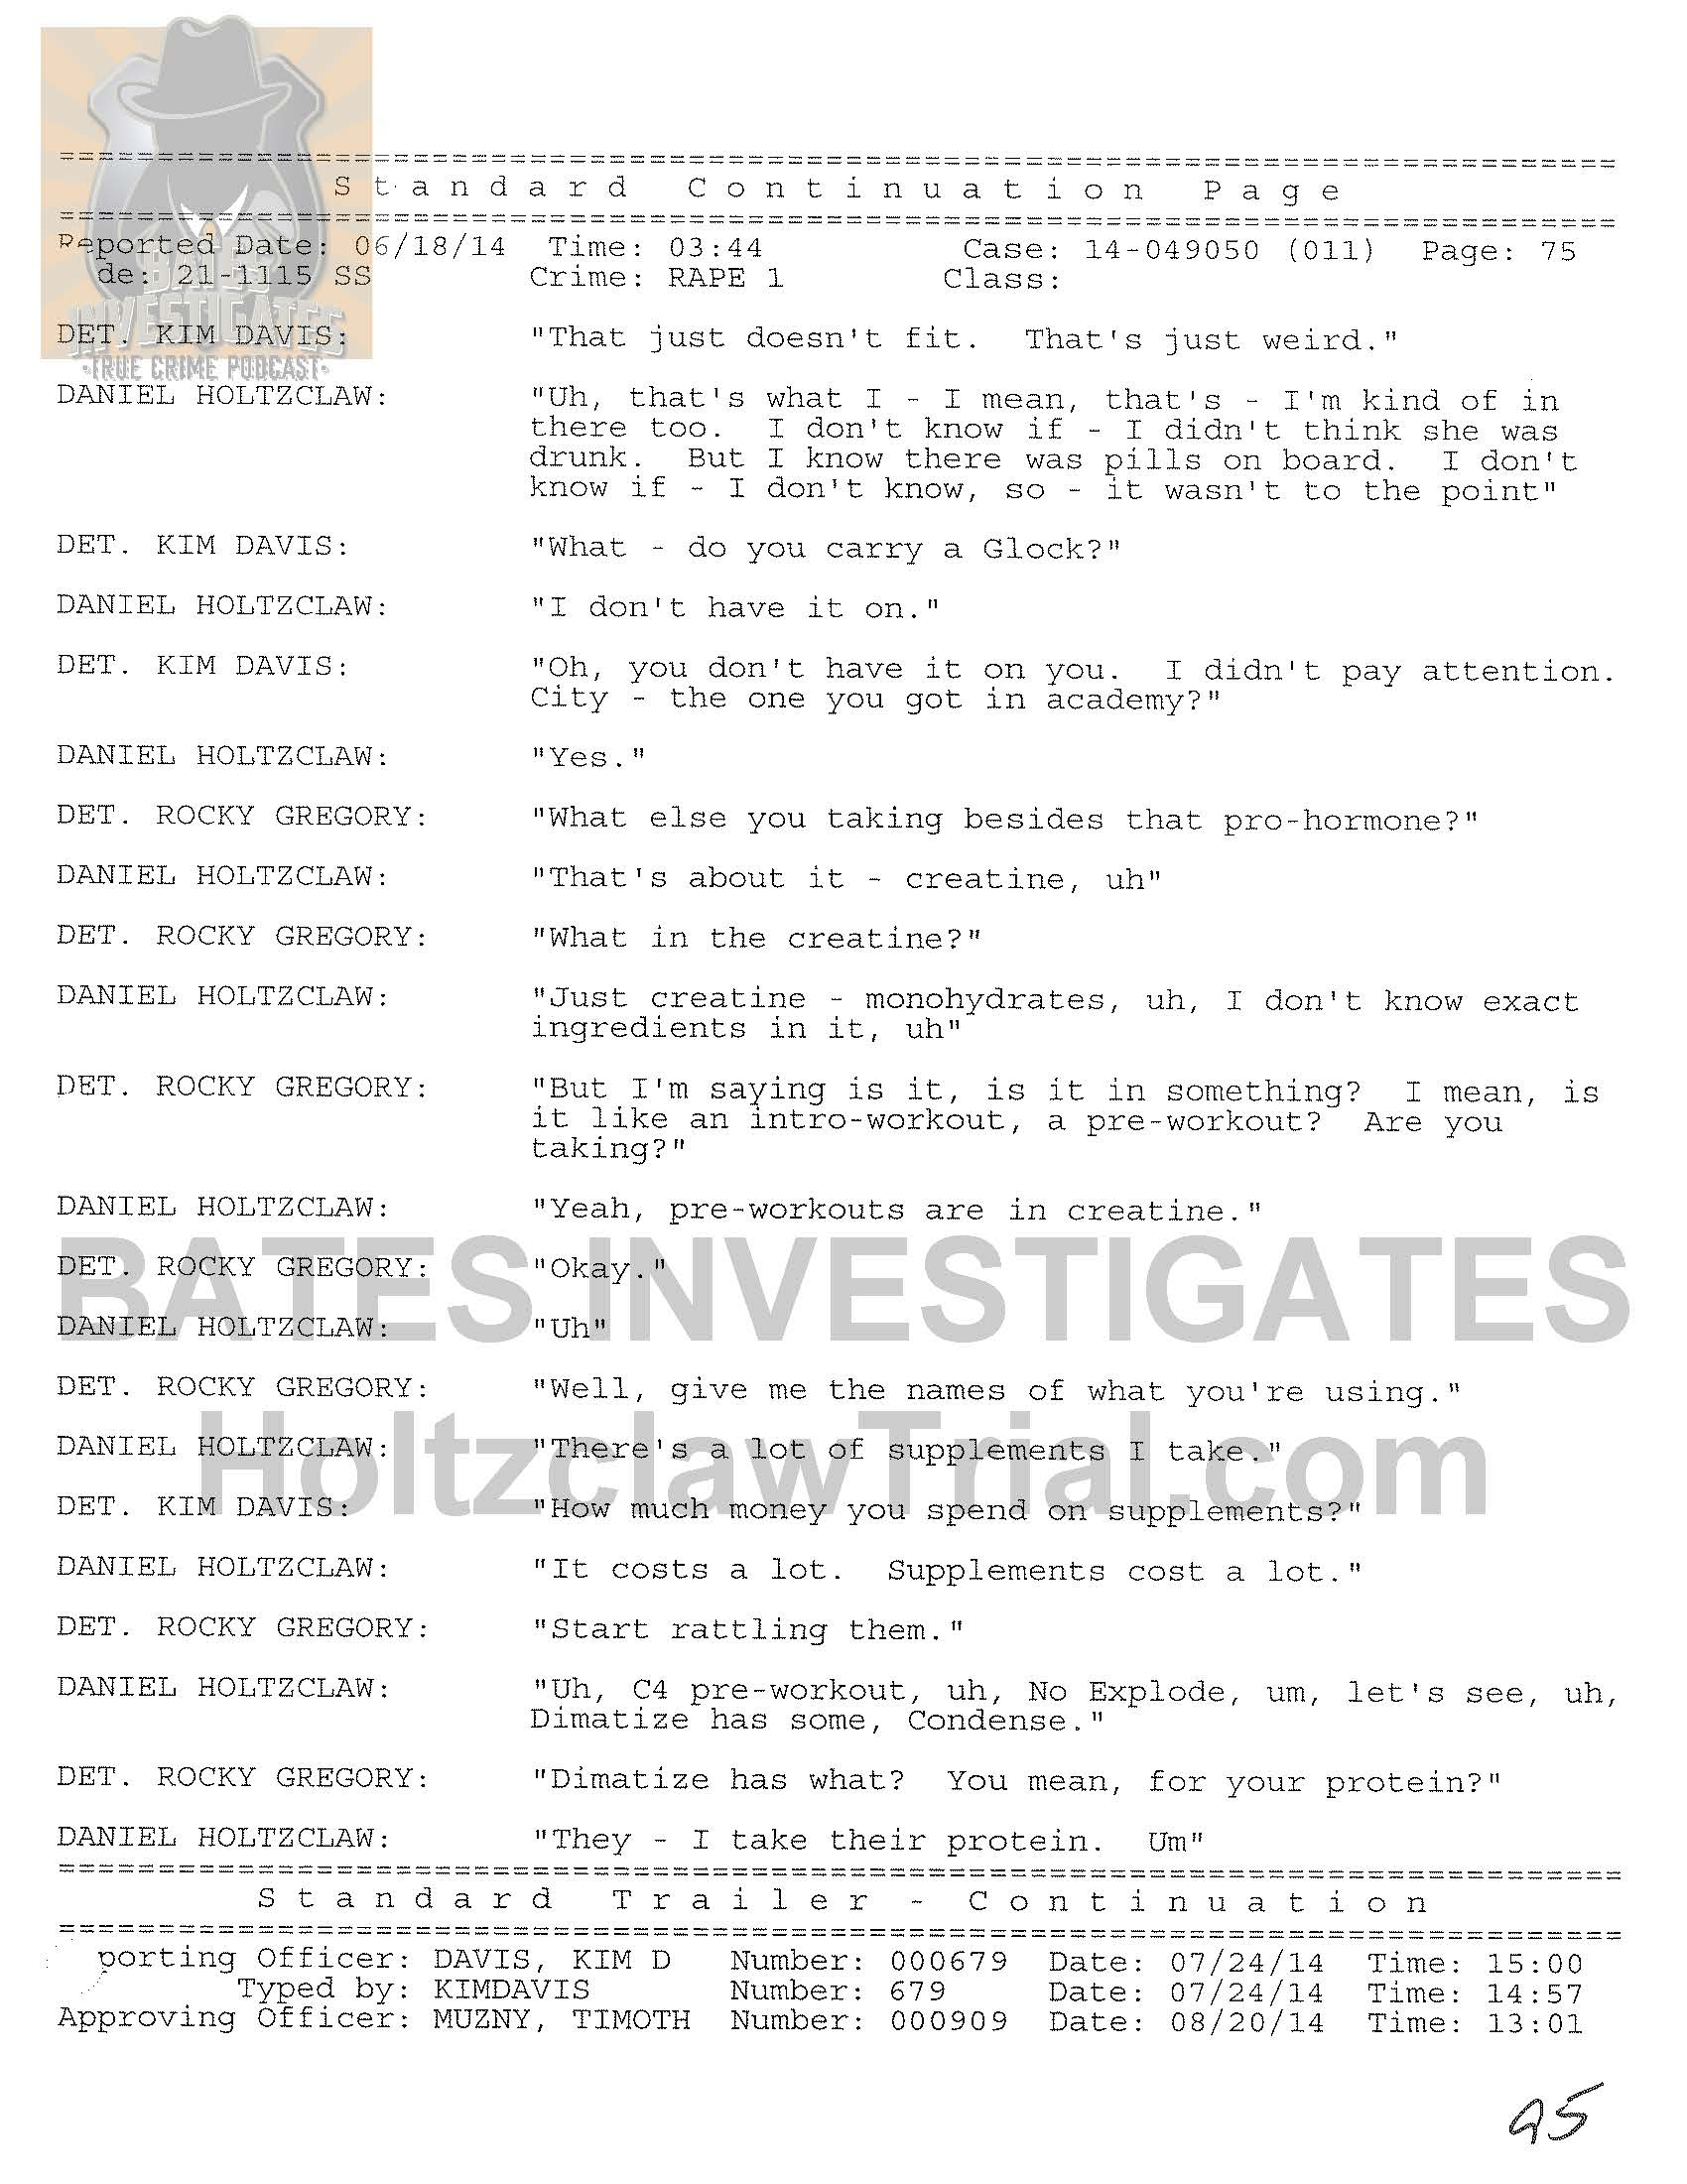 Holtzclaw Interrogation Transcript - Ep02 Redacted_Page_75.jpg